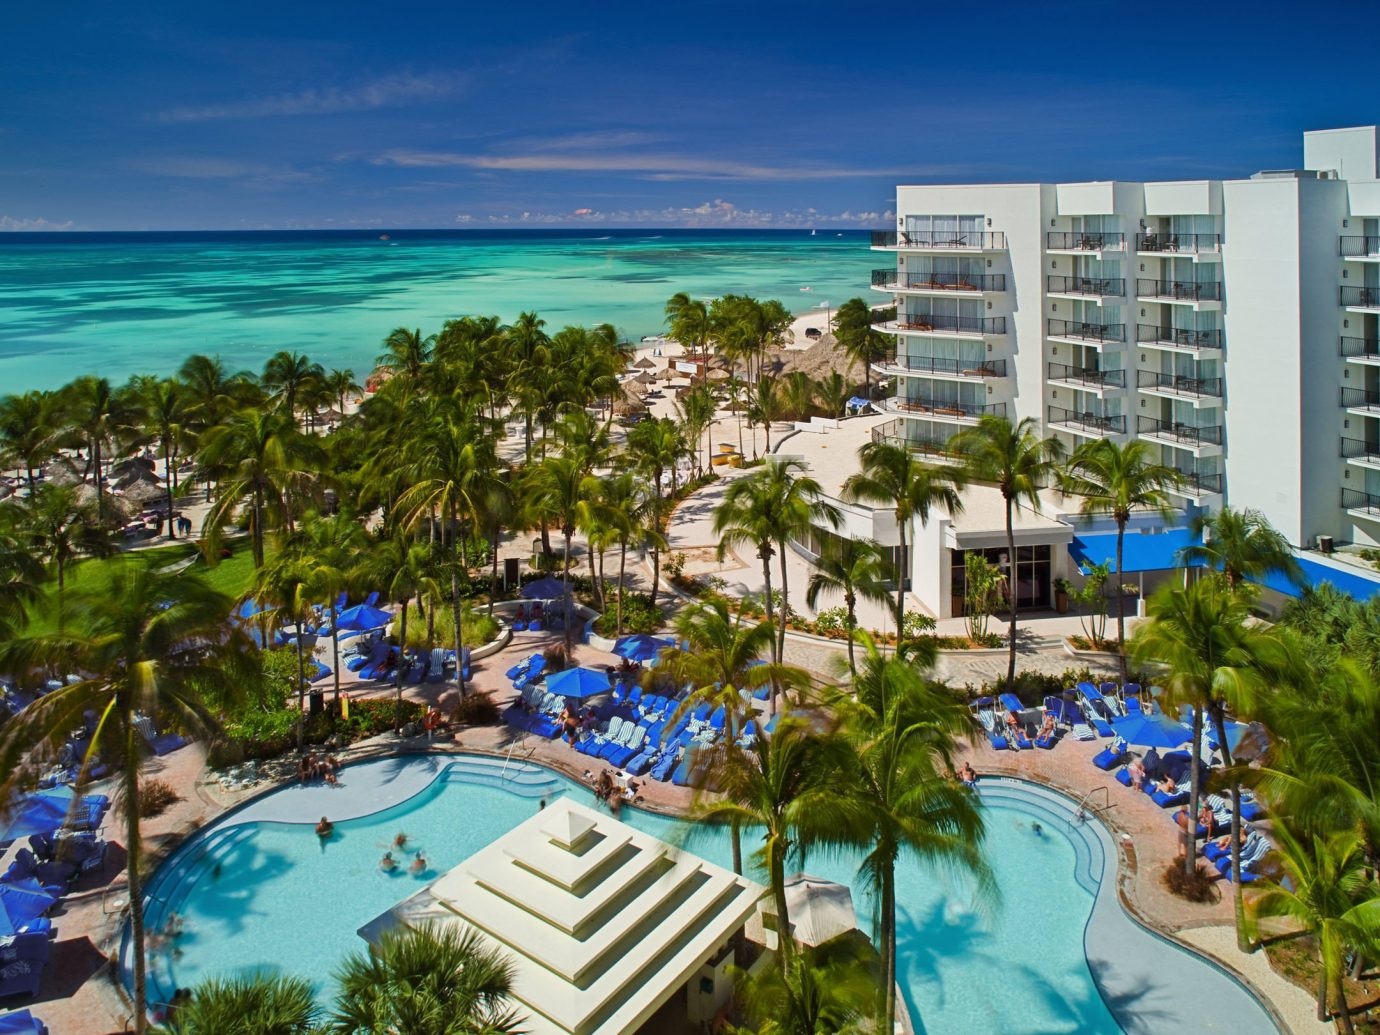 Aruba caribbean Hotels Resort leisure resort town swimming pool vacation tourism condominium hotel real estate mixed use palm tree arecales tropics City sky tree water recreation bay